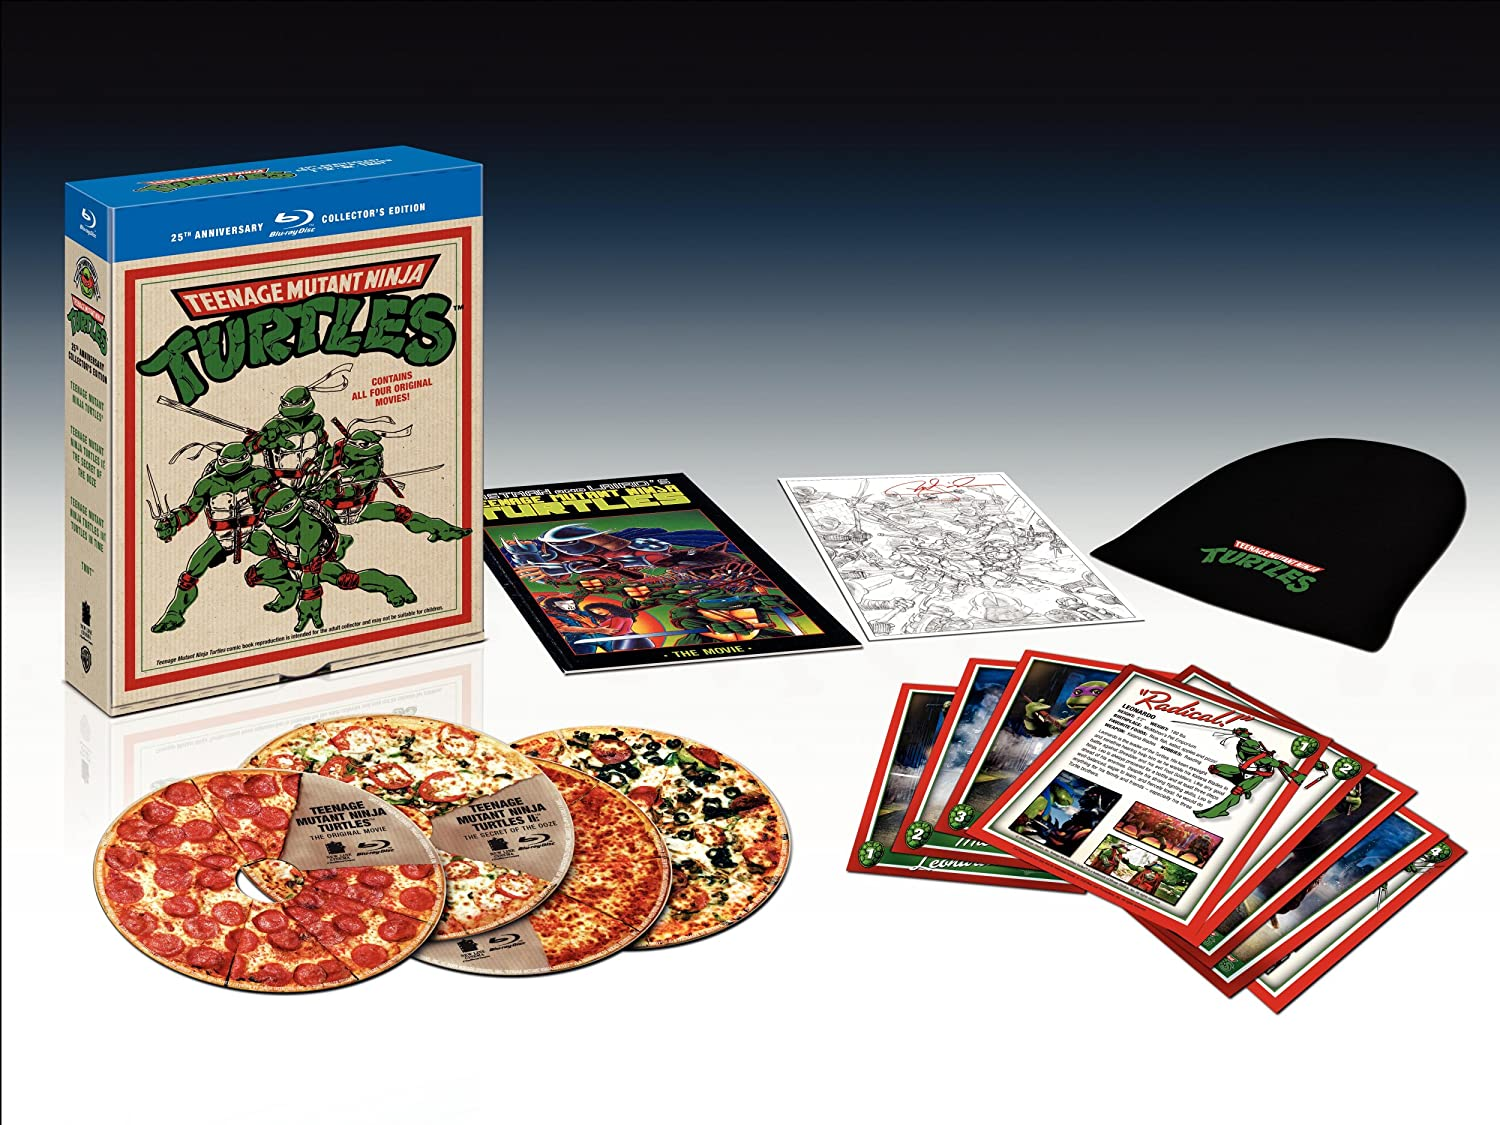 Amazon.com: Teenage Mutant Ninja Turtles: 25th Anniversary ...